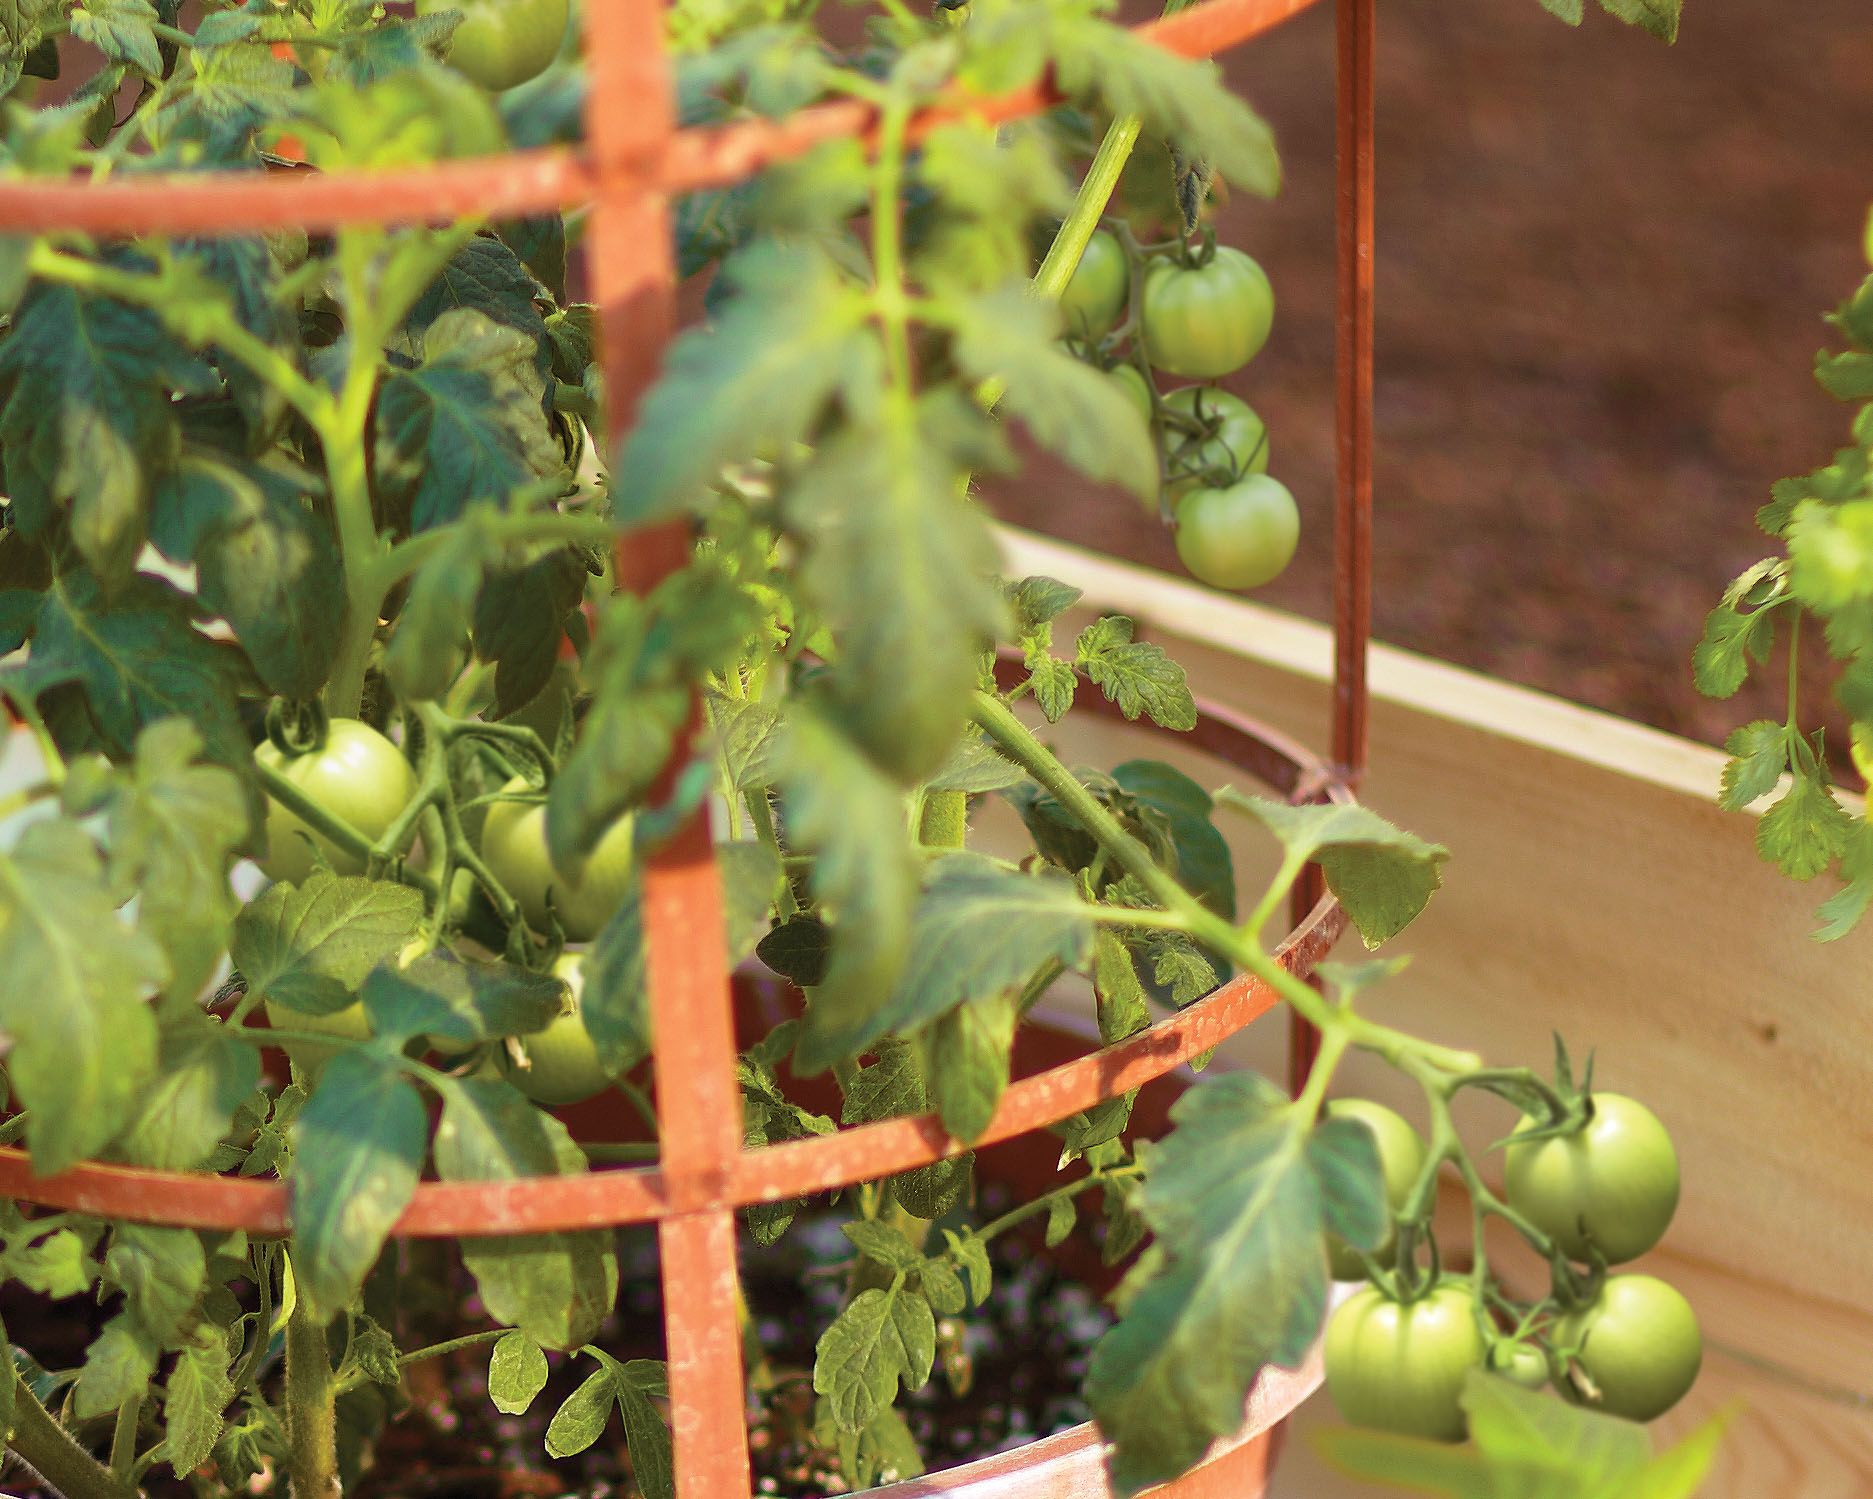 These 'maters aren't ready to pick (unless you're having fried green tomatoes for dinner). They'll turn red when they're ready--but how do you know when to harvest edibles that don't change colors? Click on to find out when your veggies are ripe for picking.